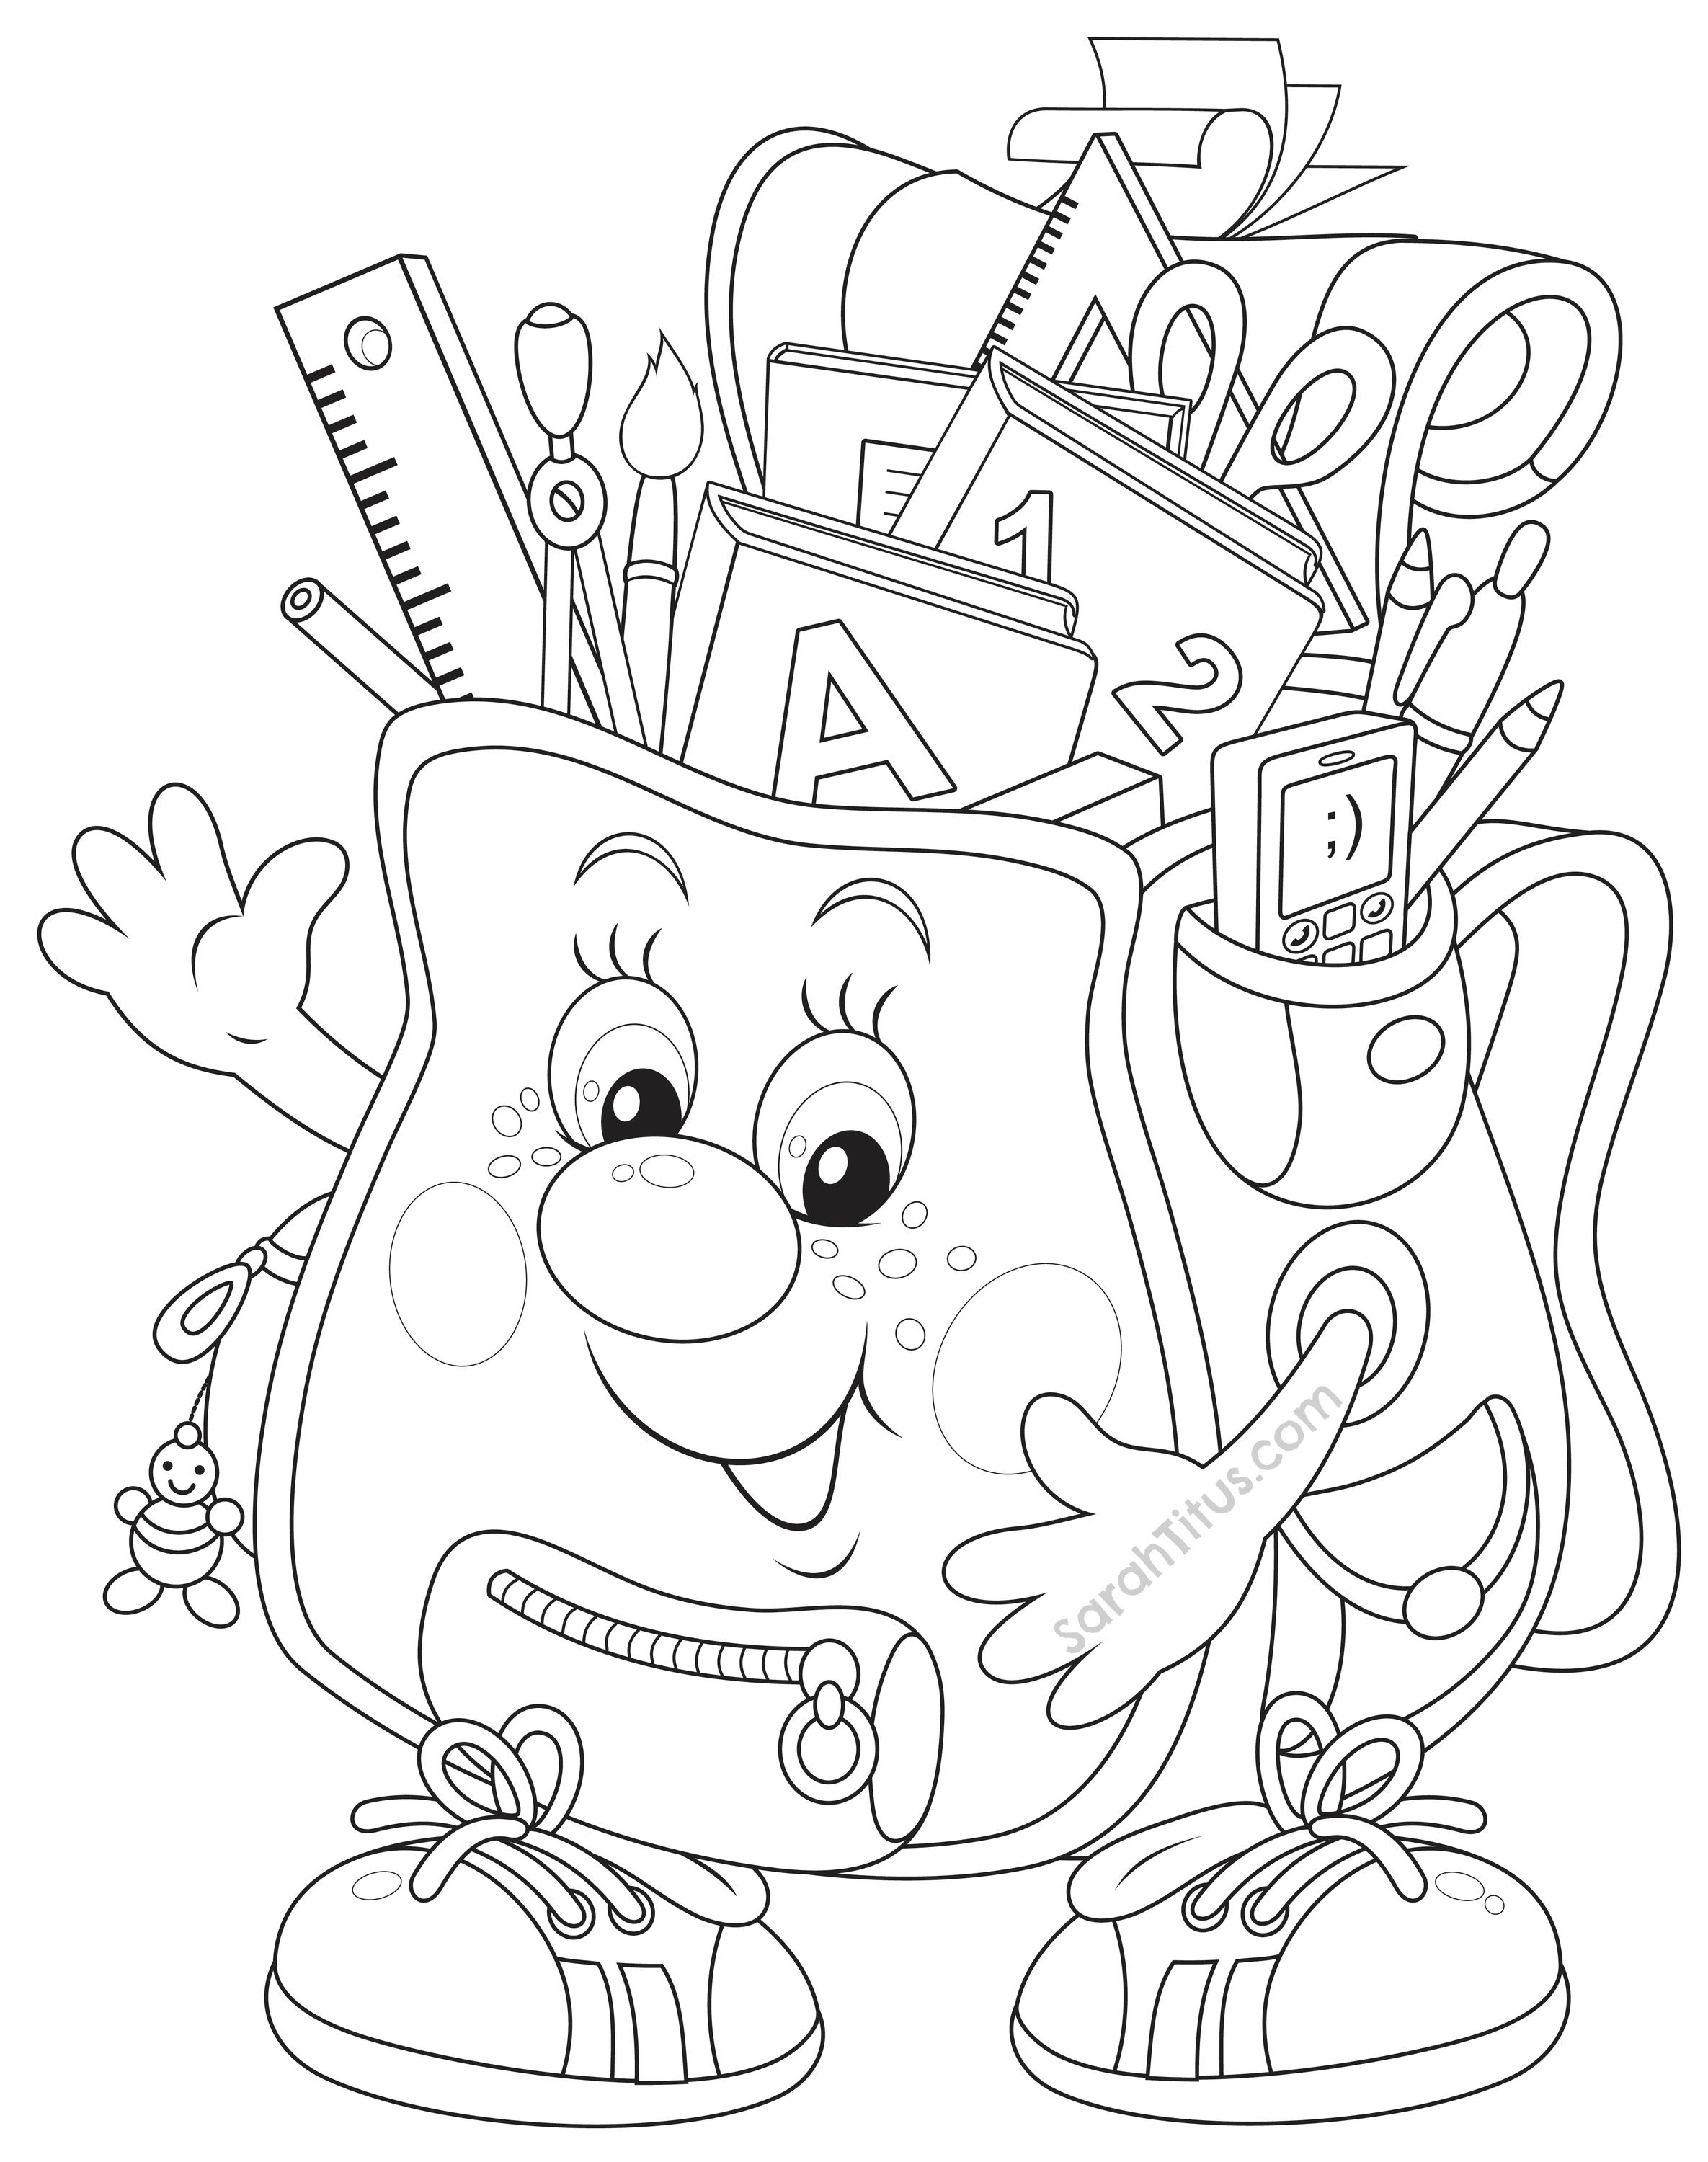 Back to School Coloring Pages | Schulstart, Ausmalbilder und Schulanfang